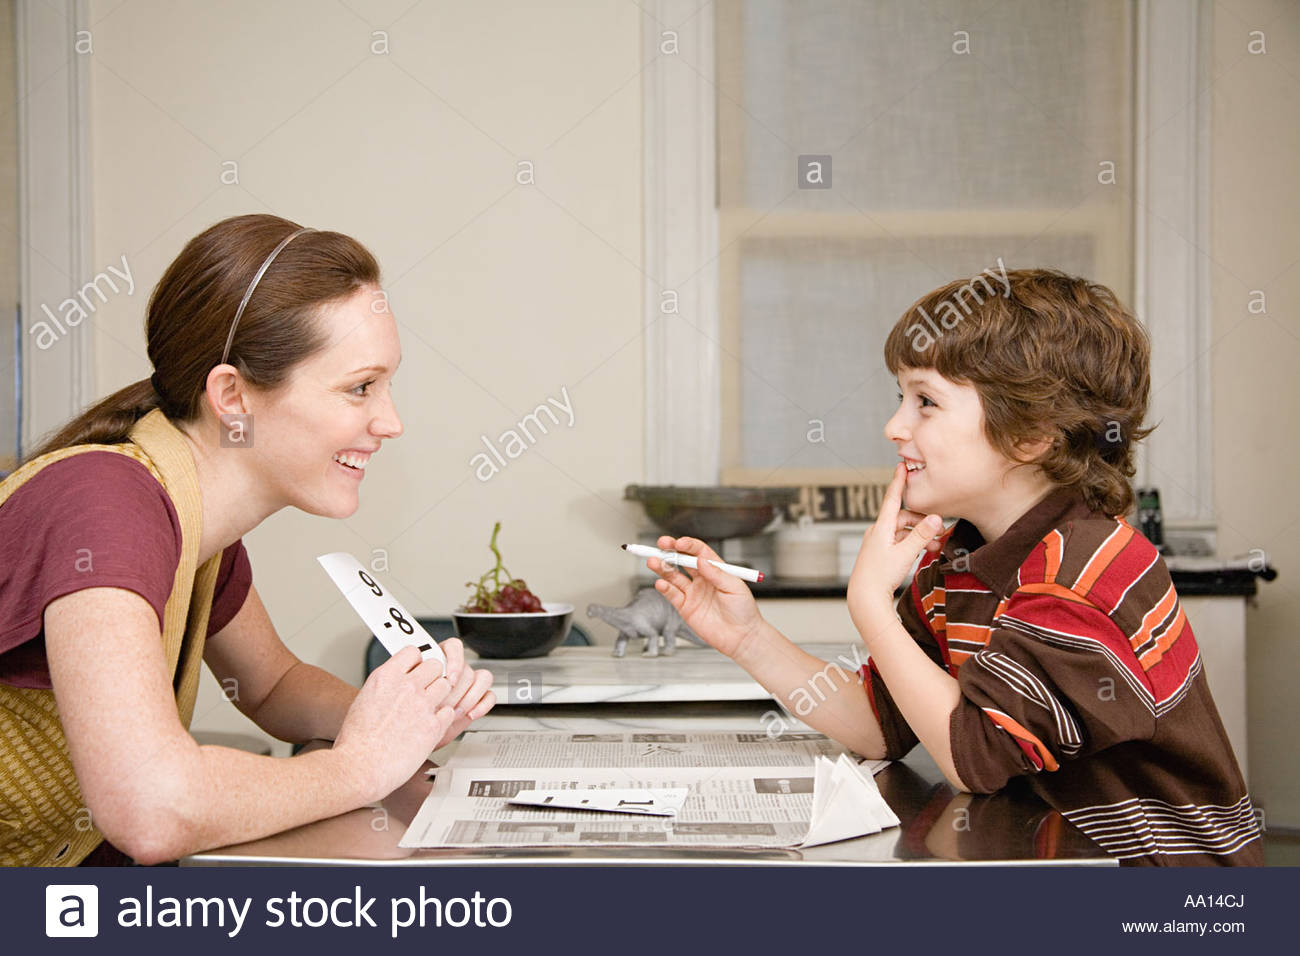 Mother helping son with mathematics - Stock Image